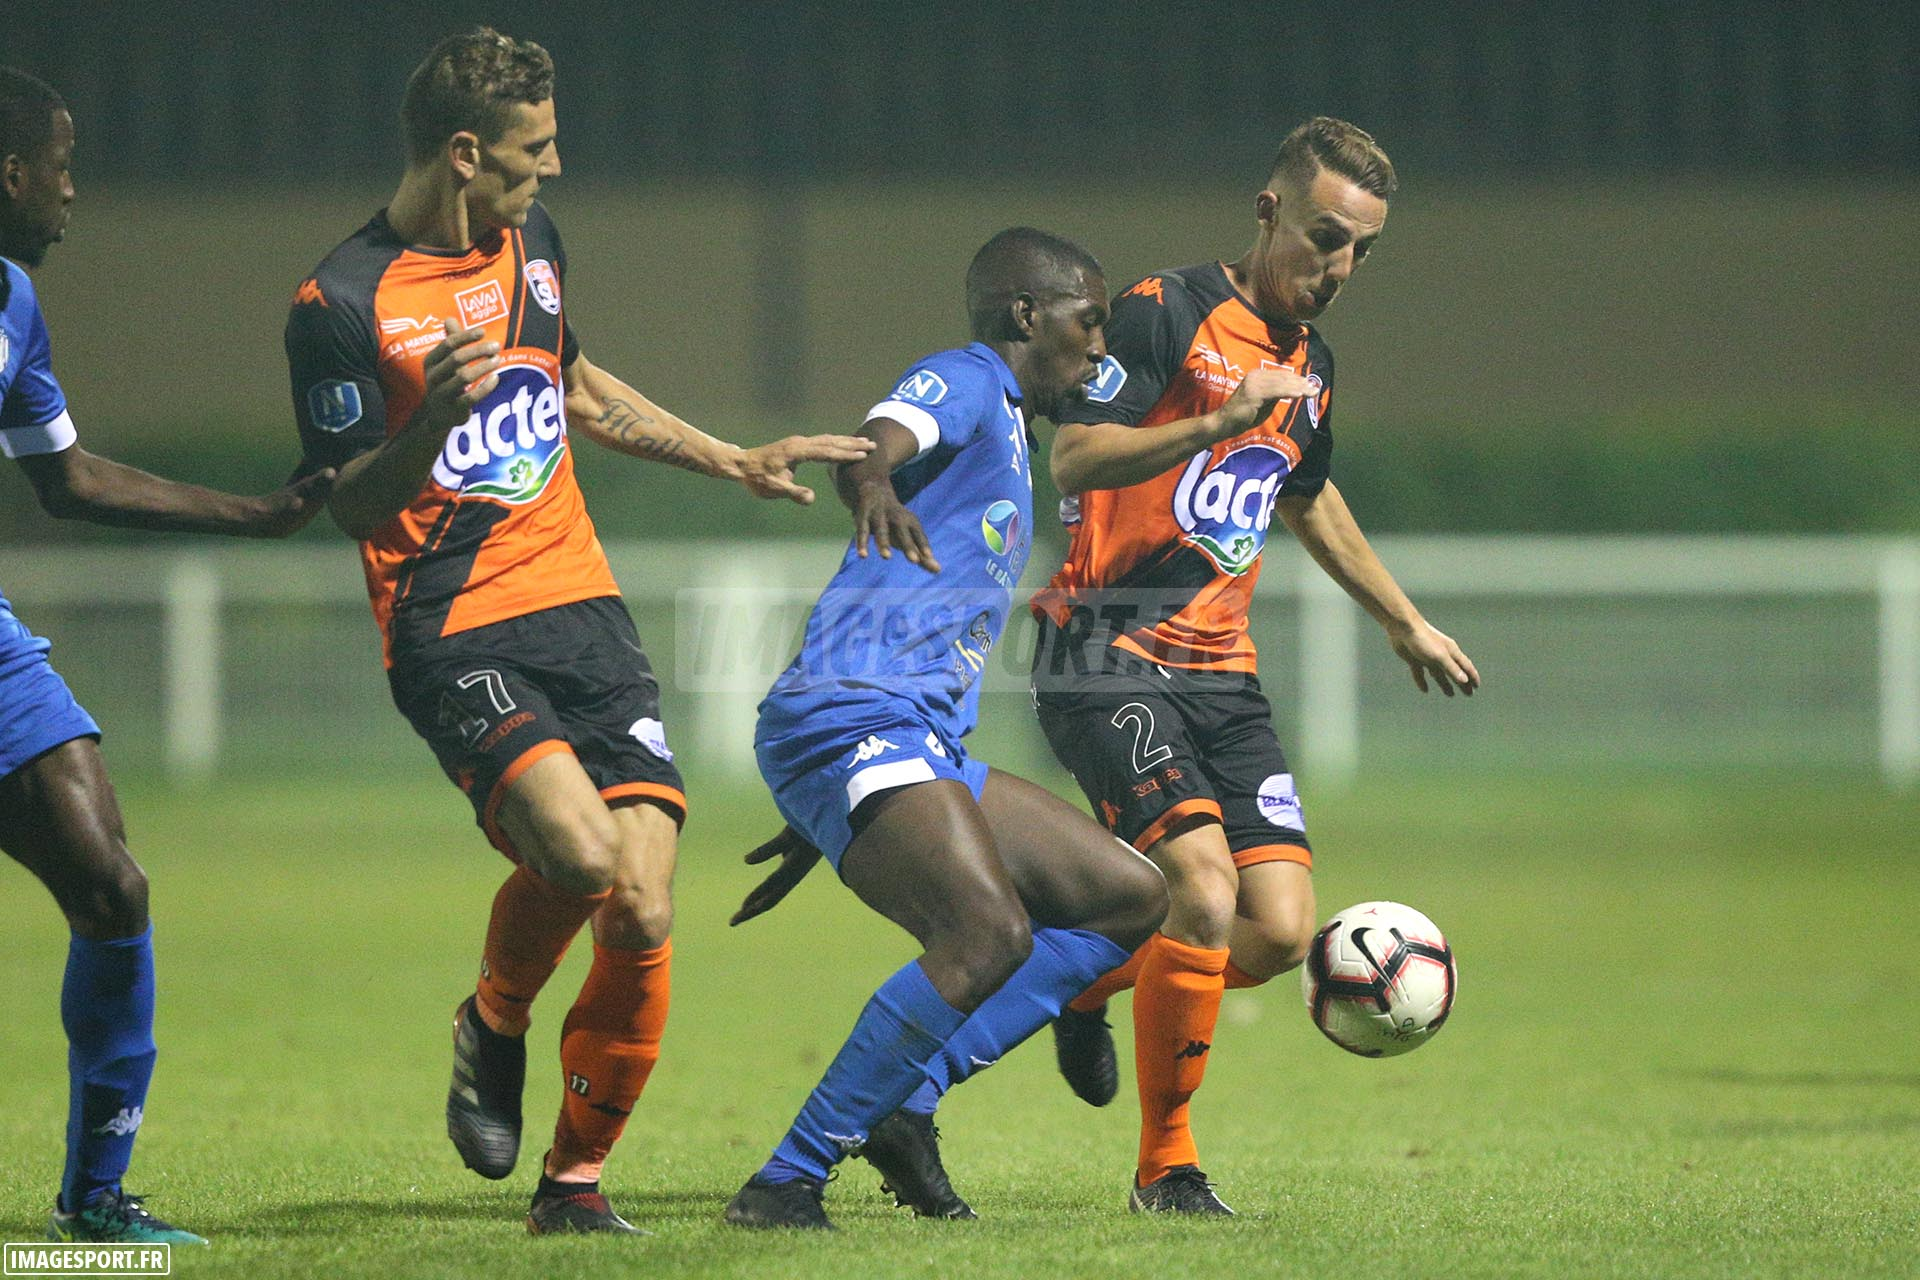 18-19-national-j04-drancy-laval_16